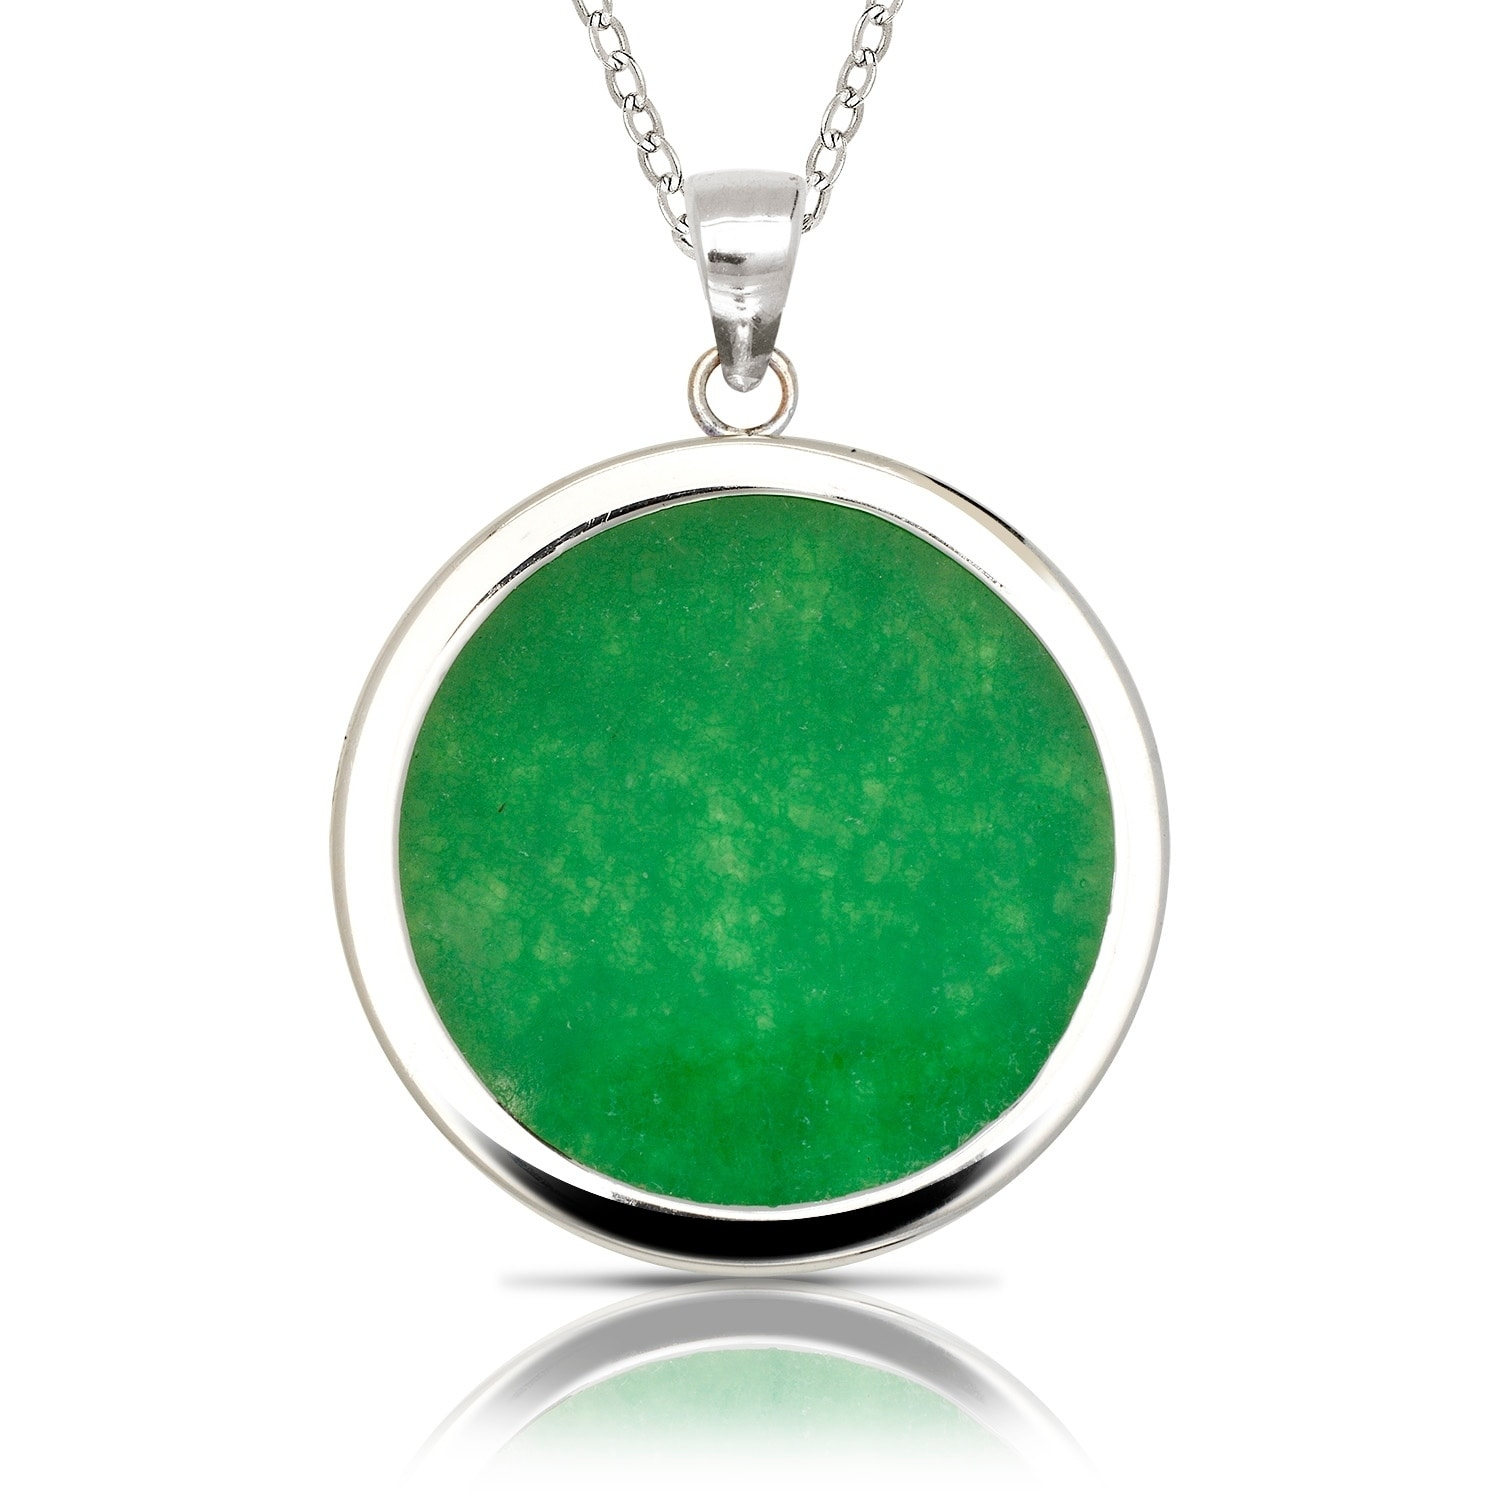 jewels necklaces onyx greenonyx collections products silver my necklace green moon mery